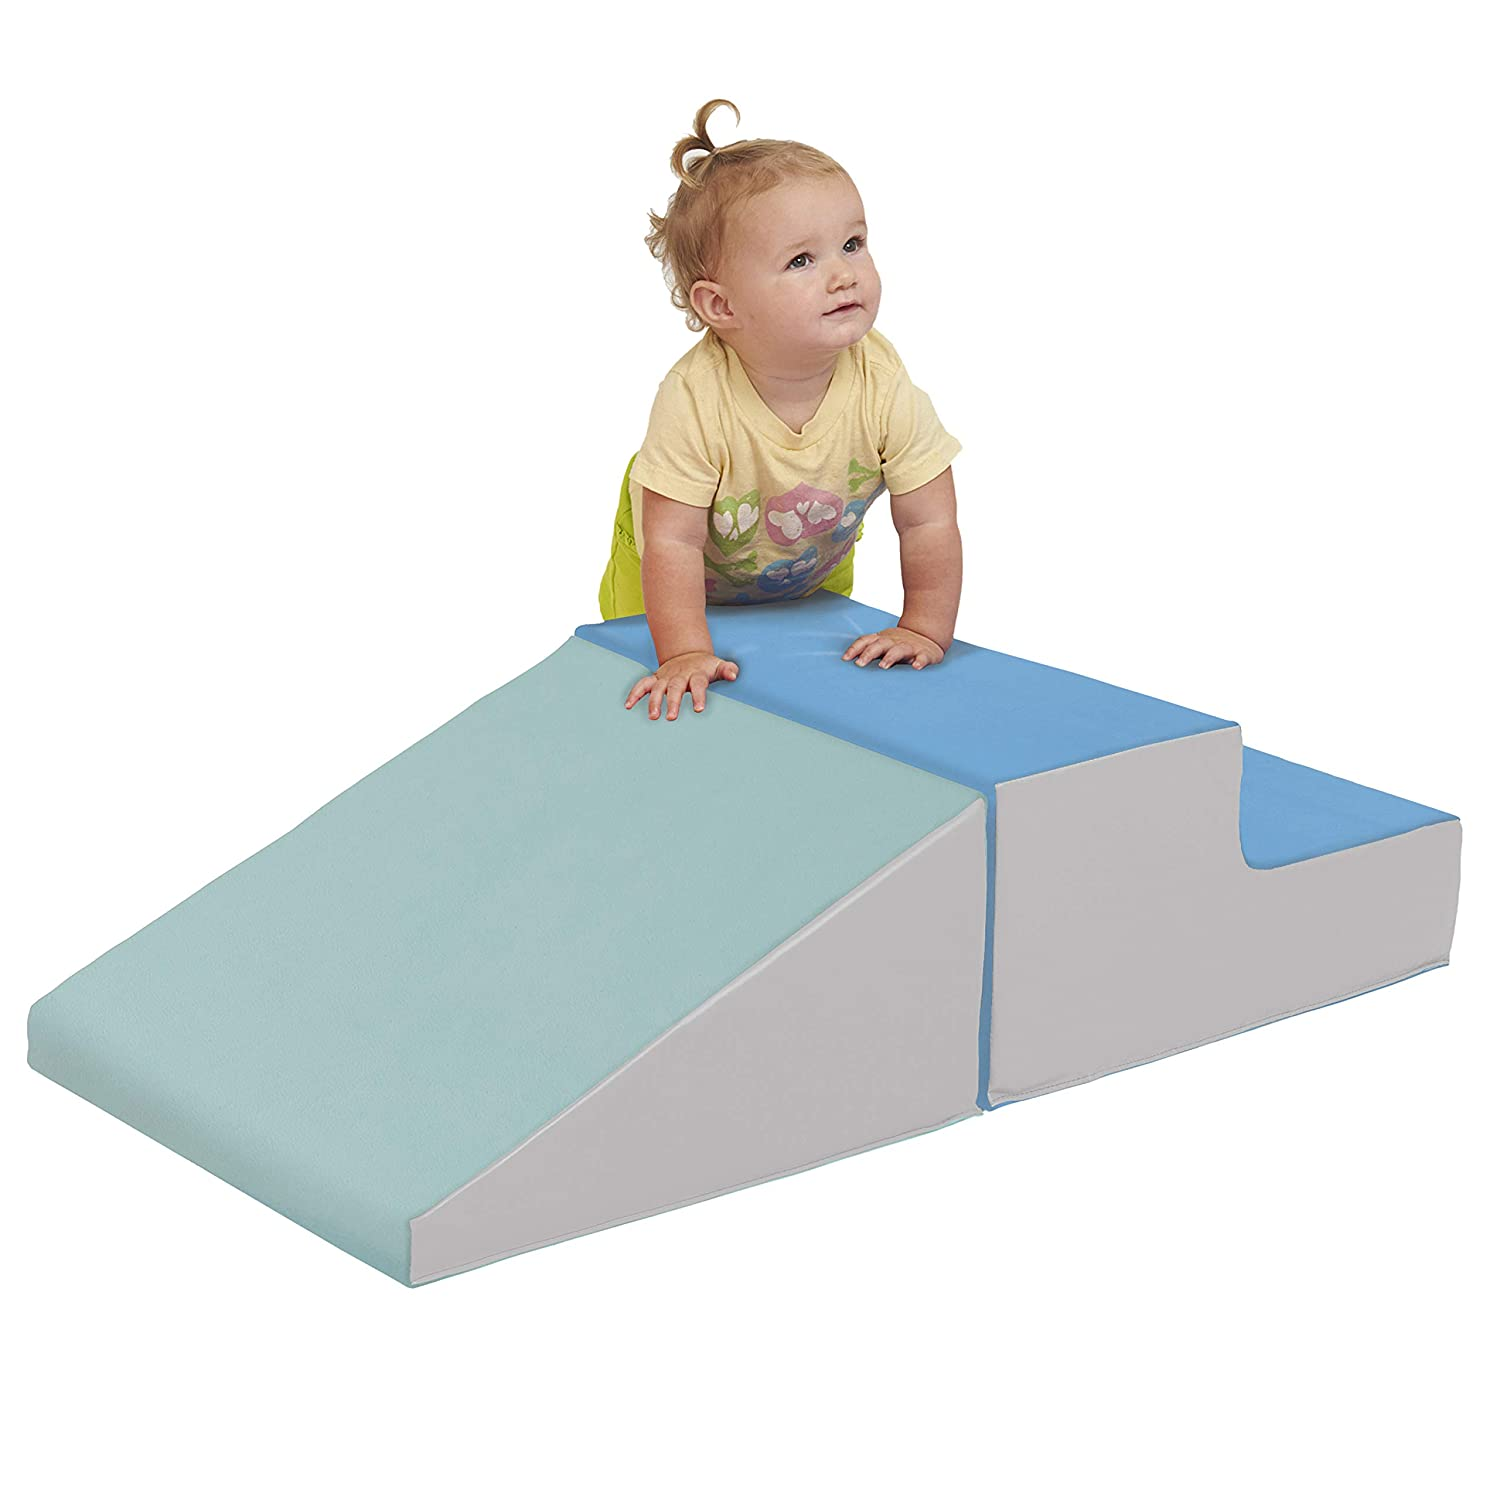 2-Piece Earthtone ELR-12653F-ET ECR4Kids SoftZone Little Me Play Climb and Slide